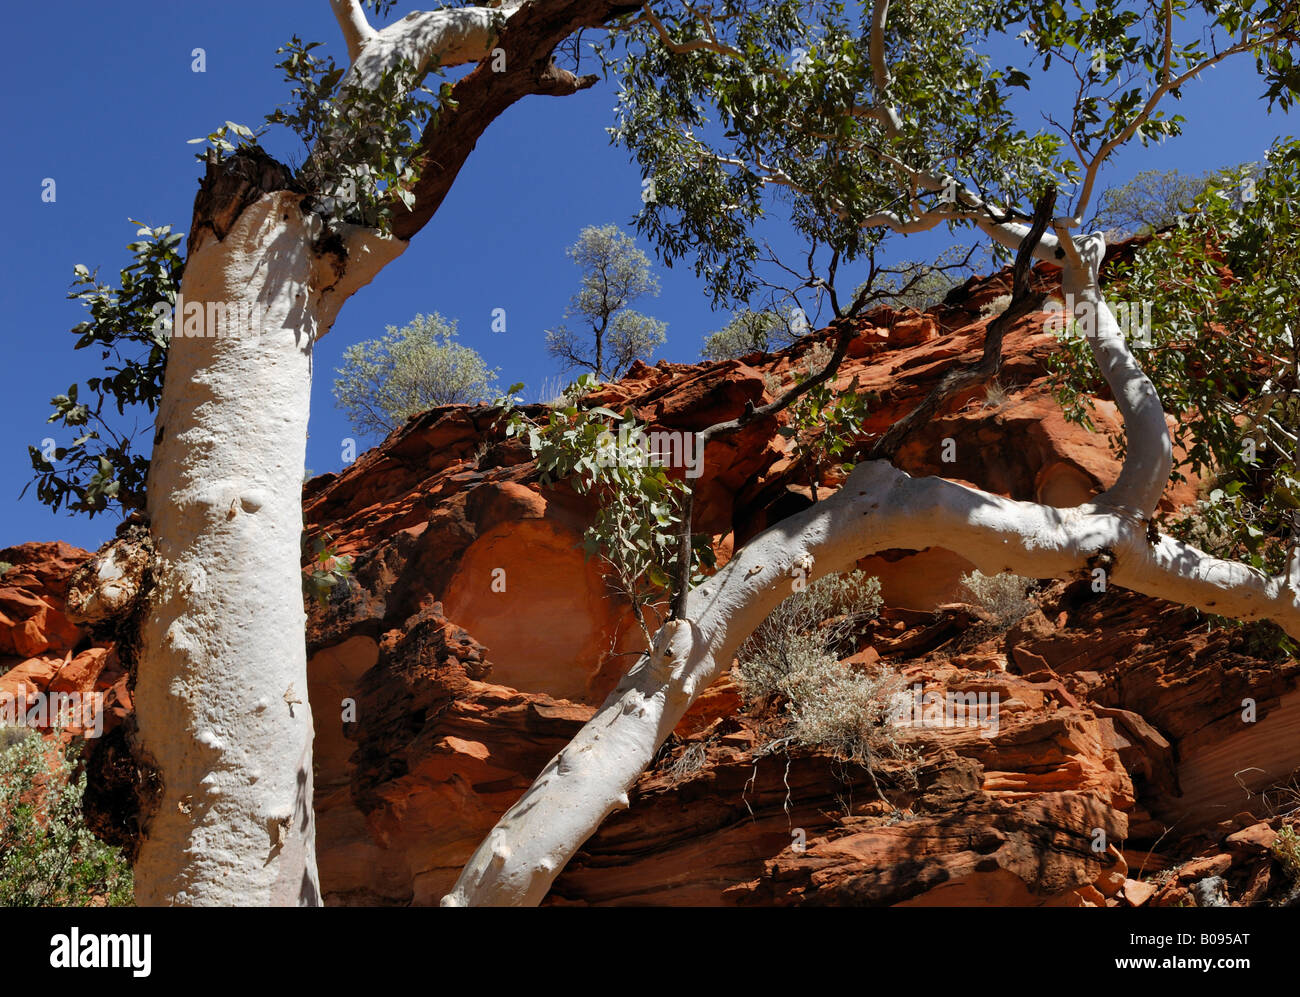 Eucalyptus with white bark against red rock formations in Kings Canyon, Watarrka National Park, Northern Territory, - Stock Image